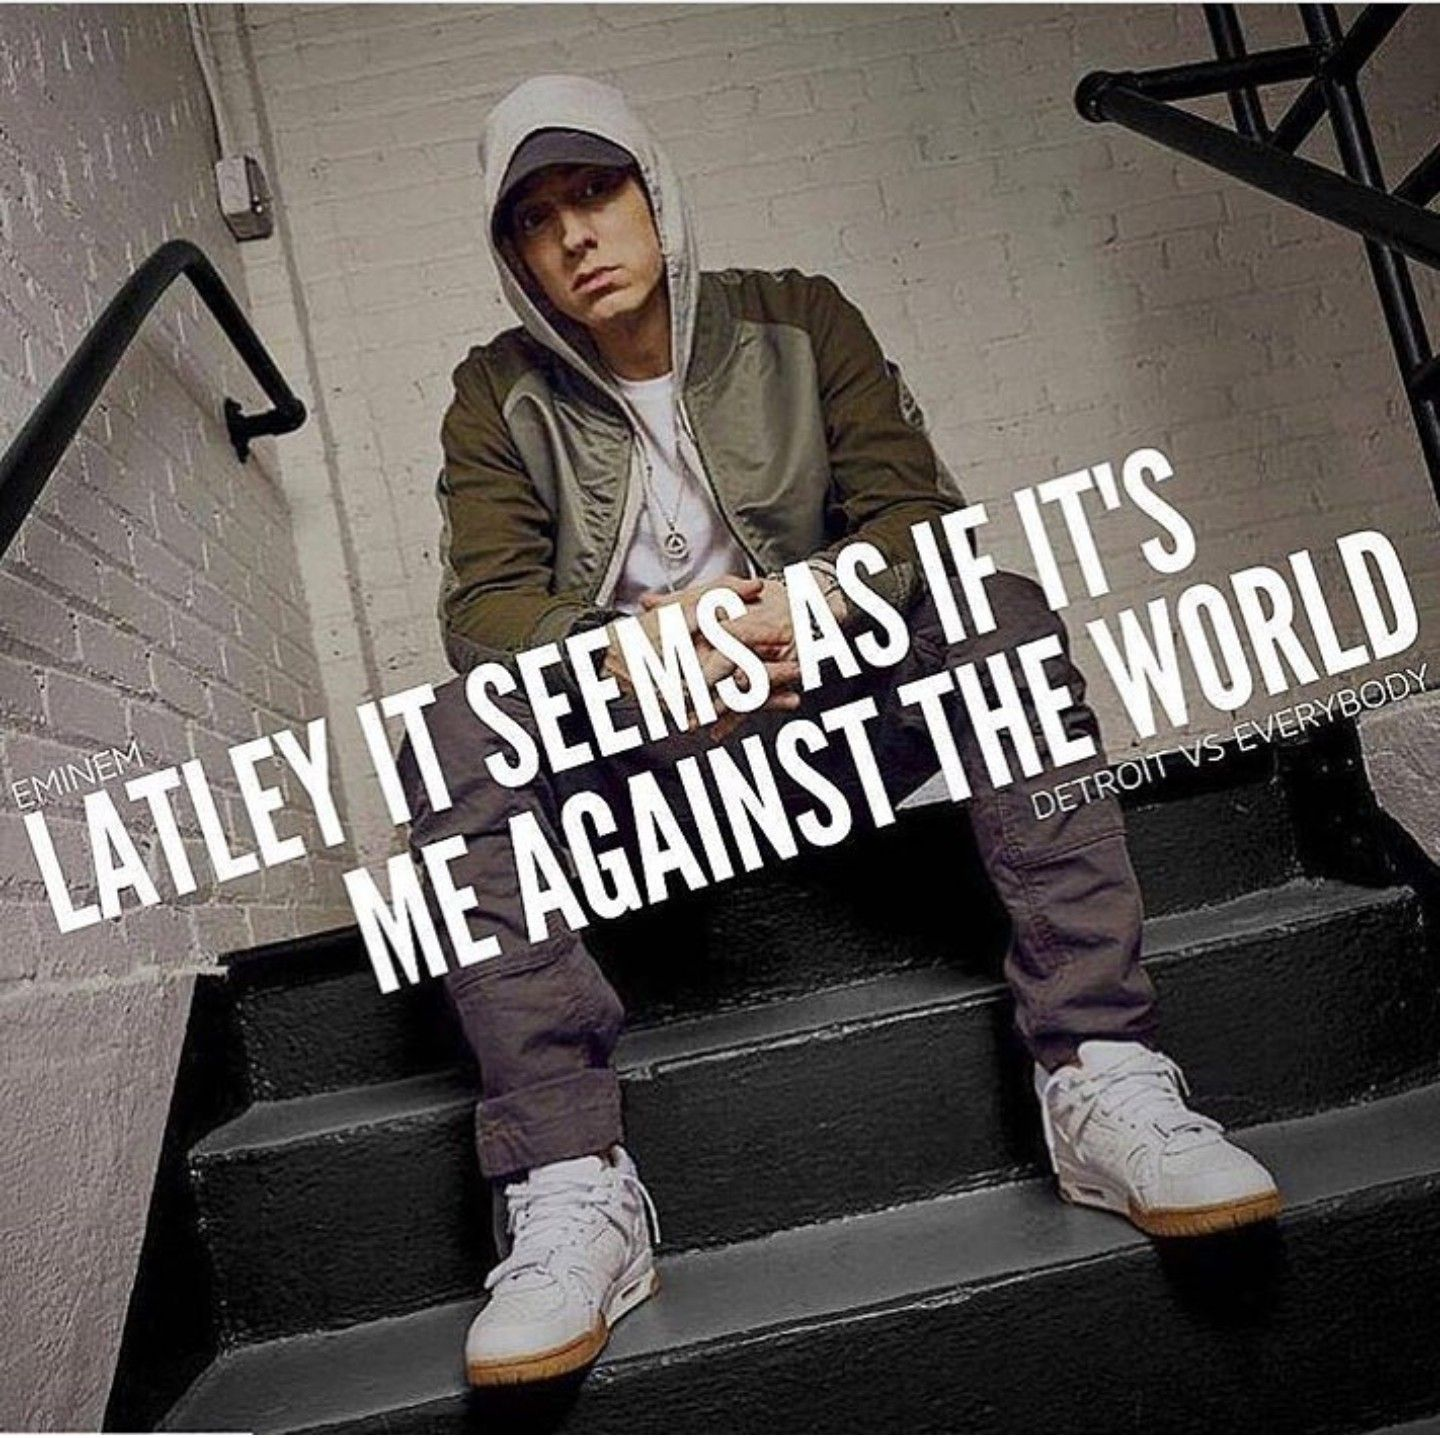 Eminem • Lately it seems as if it s me against the world.  8e23930aa0d7e